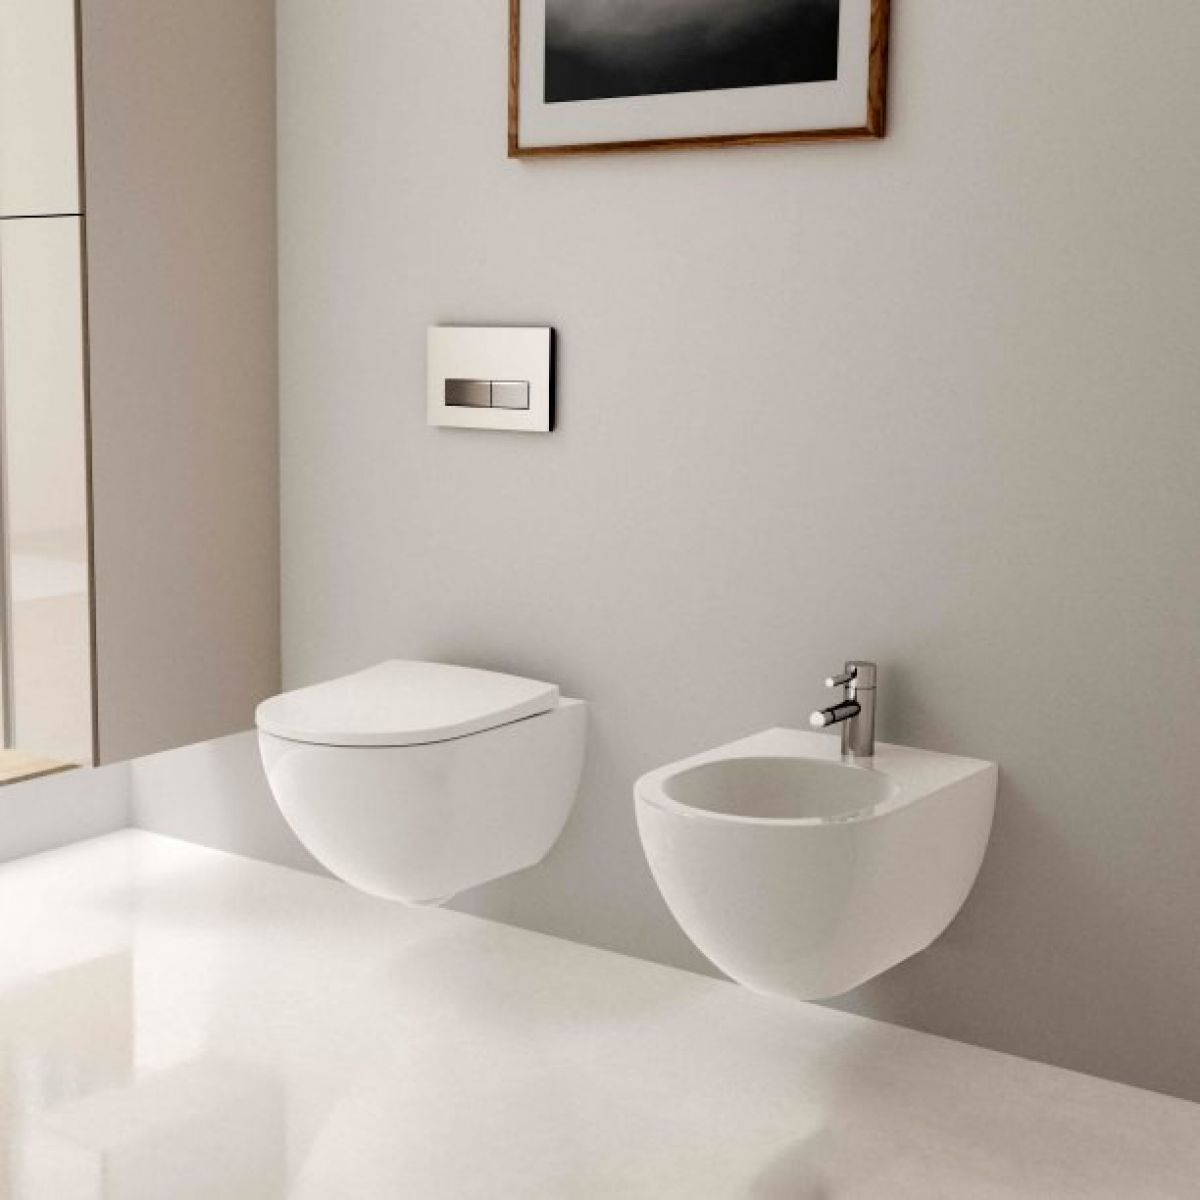 geberit acanto wall hung rimfree washdown toilet uk. Black Bedroom Furniture Sets. Home Design Ideas